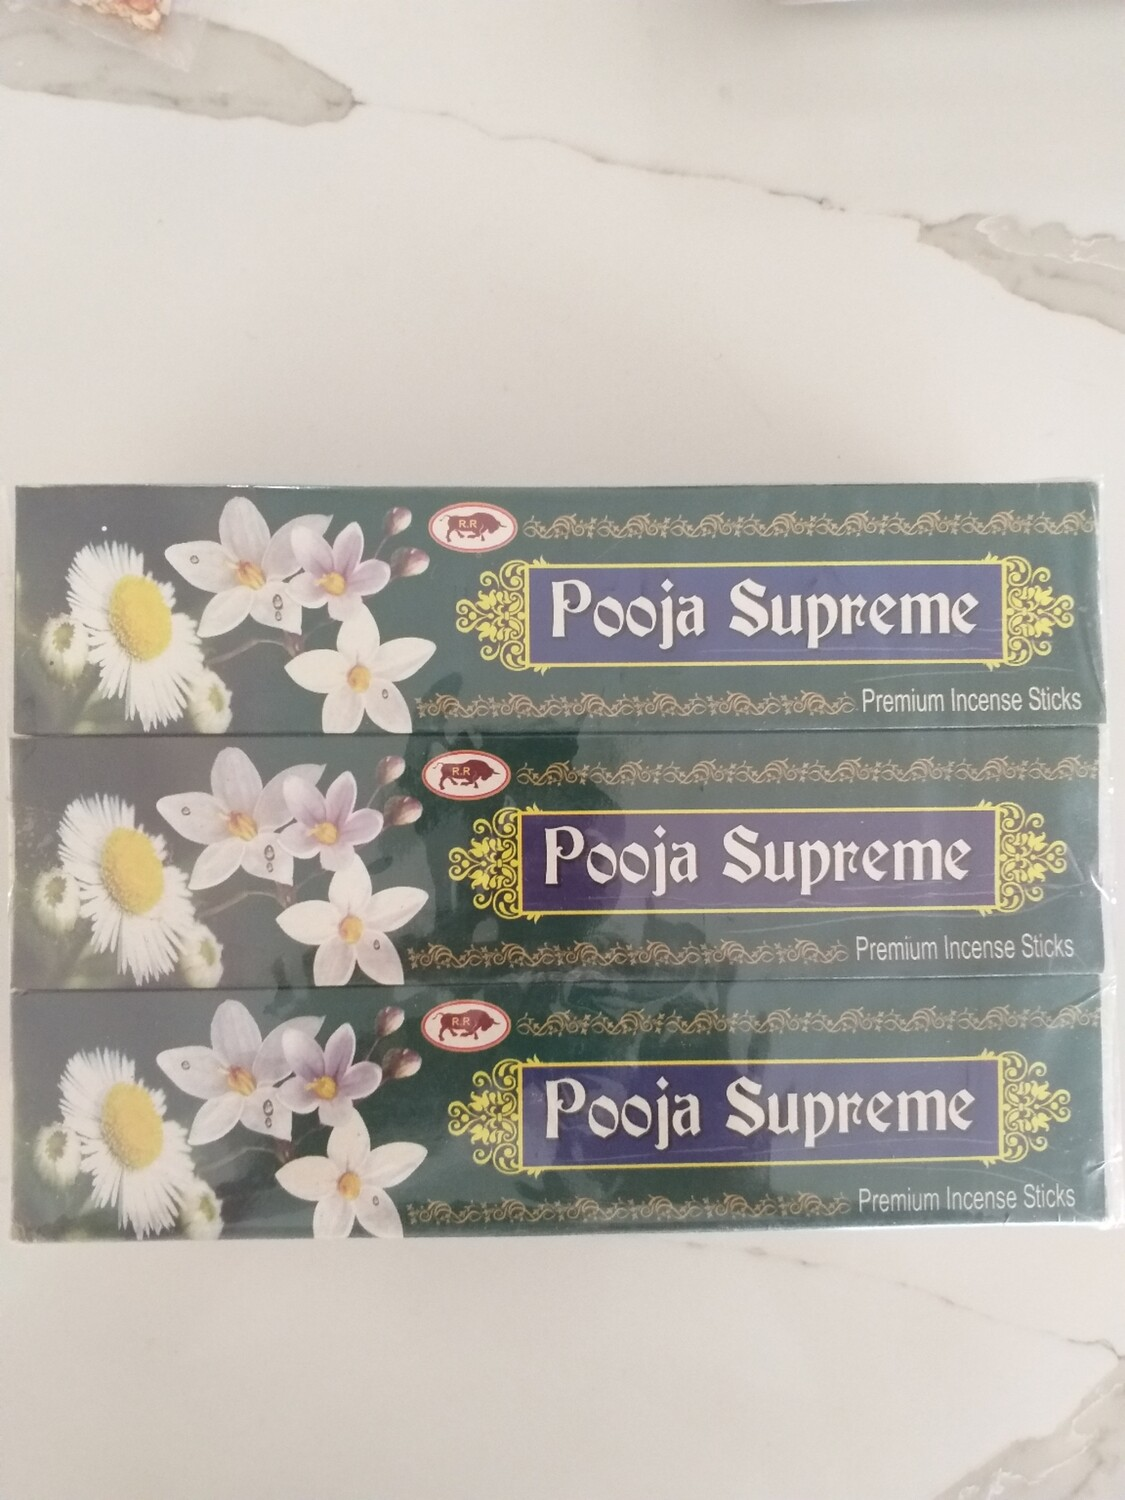 POOJA SUPREME INCENSE STICKS 20 GMS